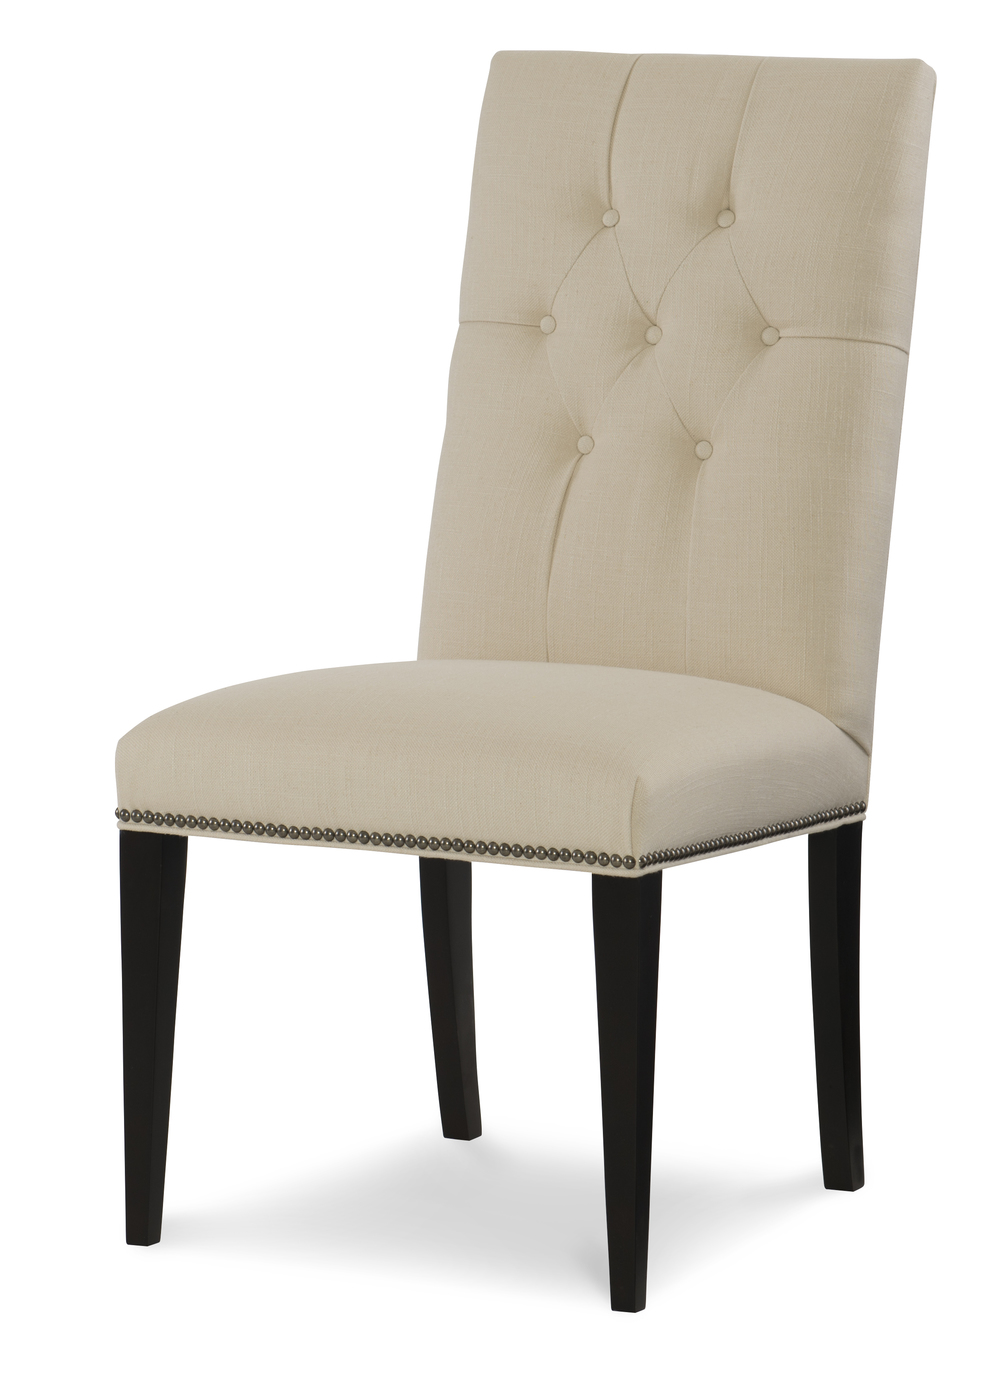 Century Furniture - Fairmont Tufted Side Chair